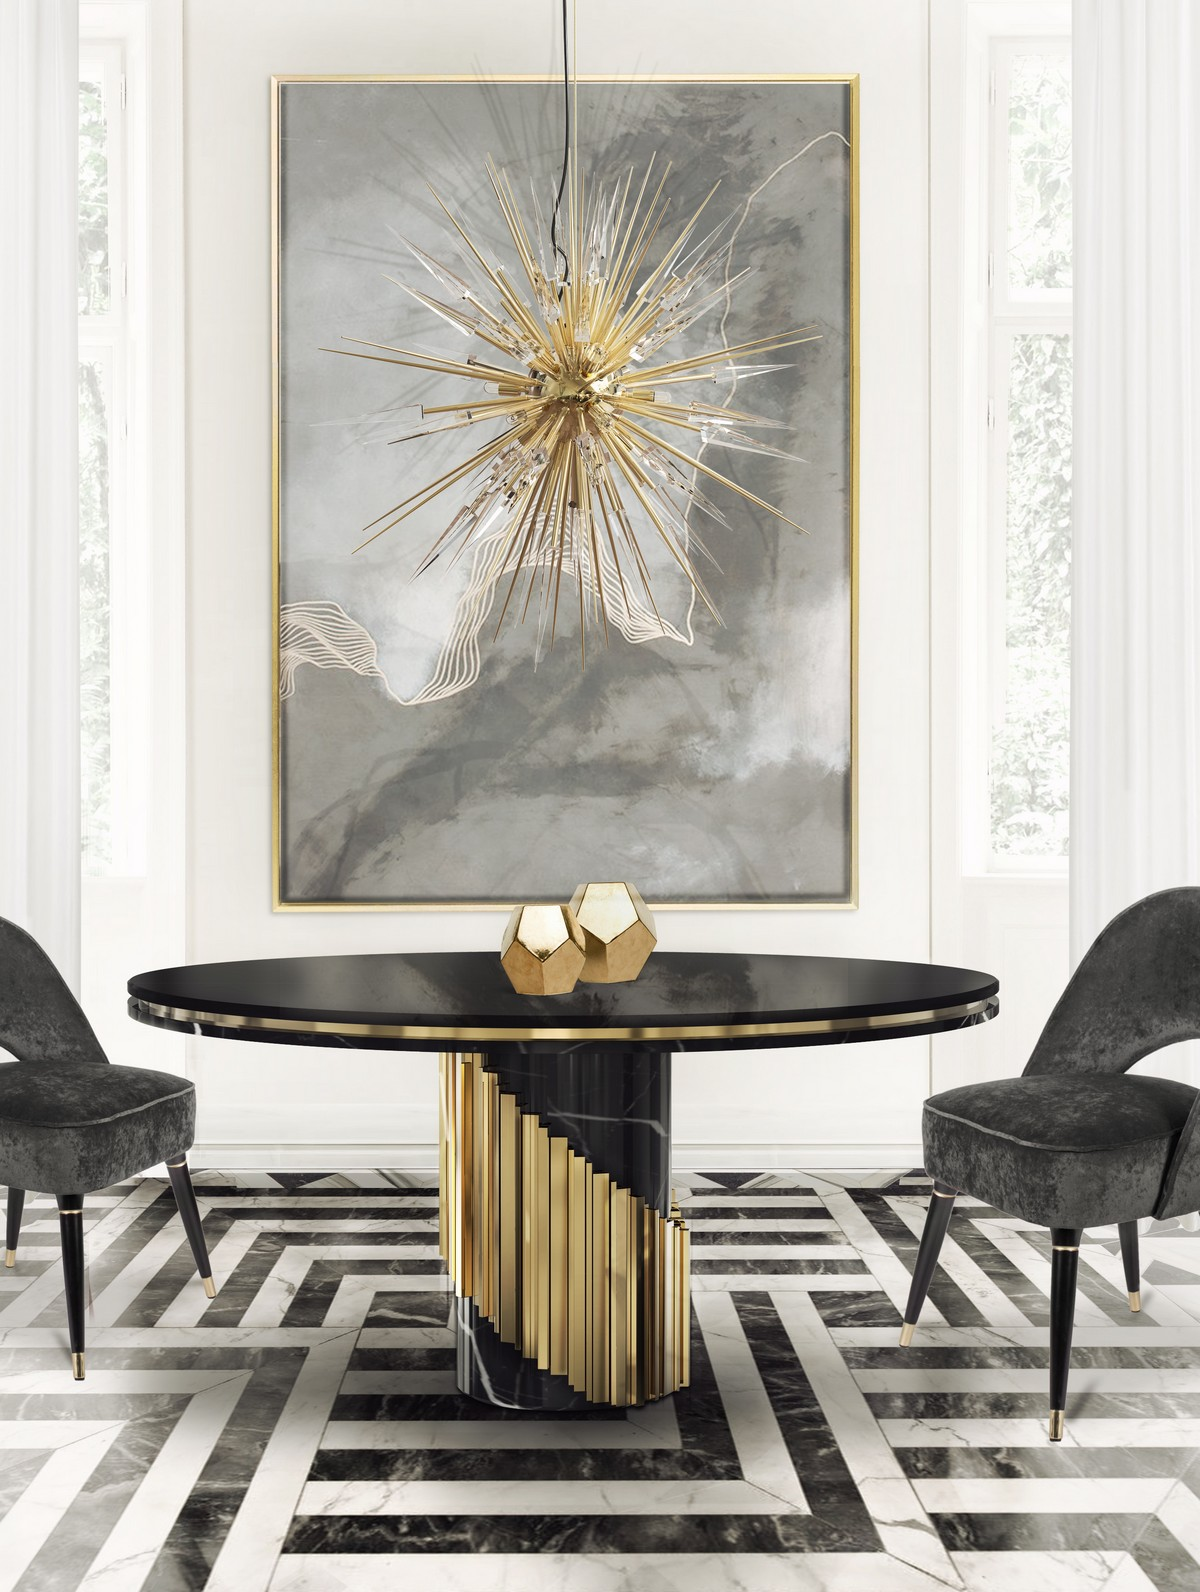 LUXURY DÉCOR IDEAS FOR THE LIVING ROOM  Luxury Décor Ideas for the Living Room littus dining table cover 01